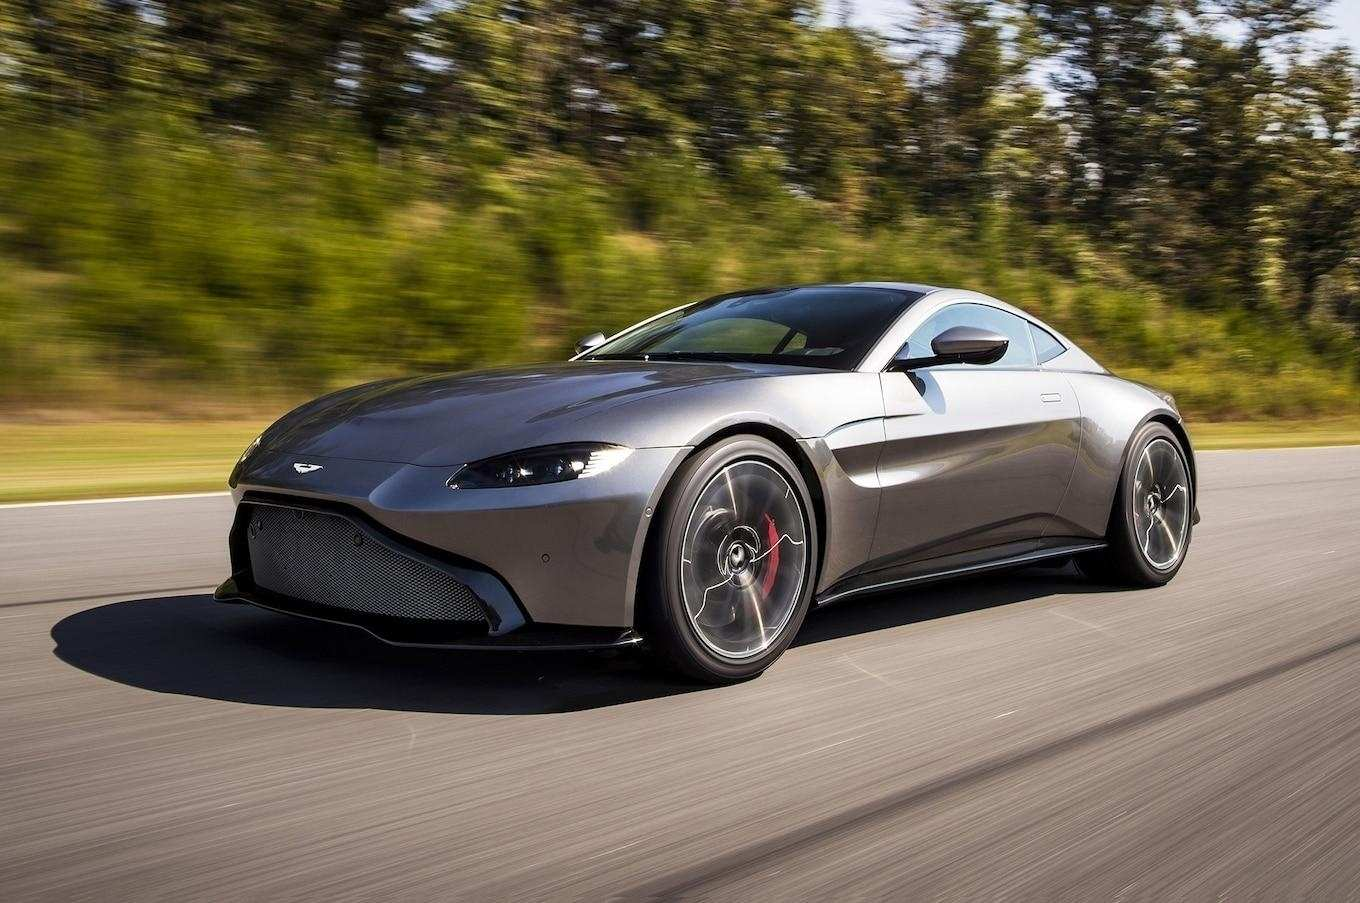 33 Best 2019 Aston Martin DB9 Engine